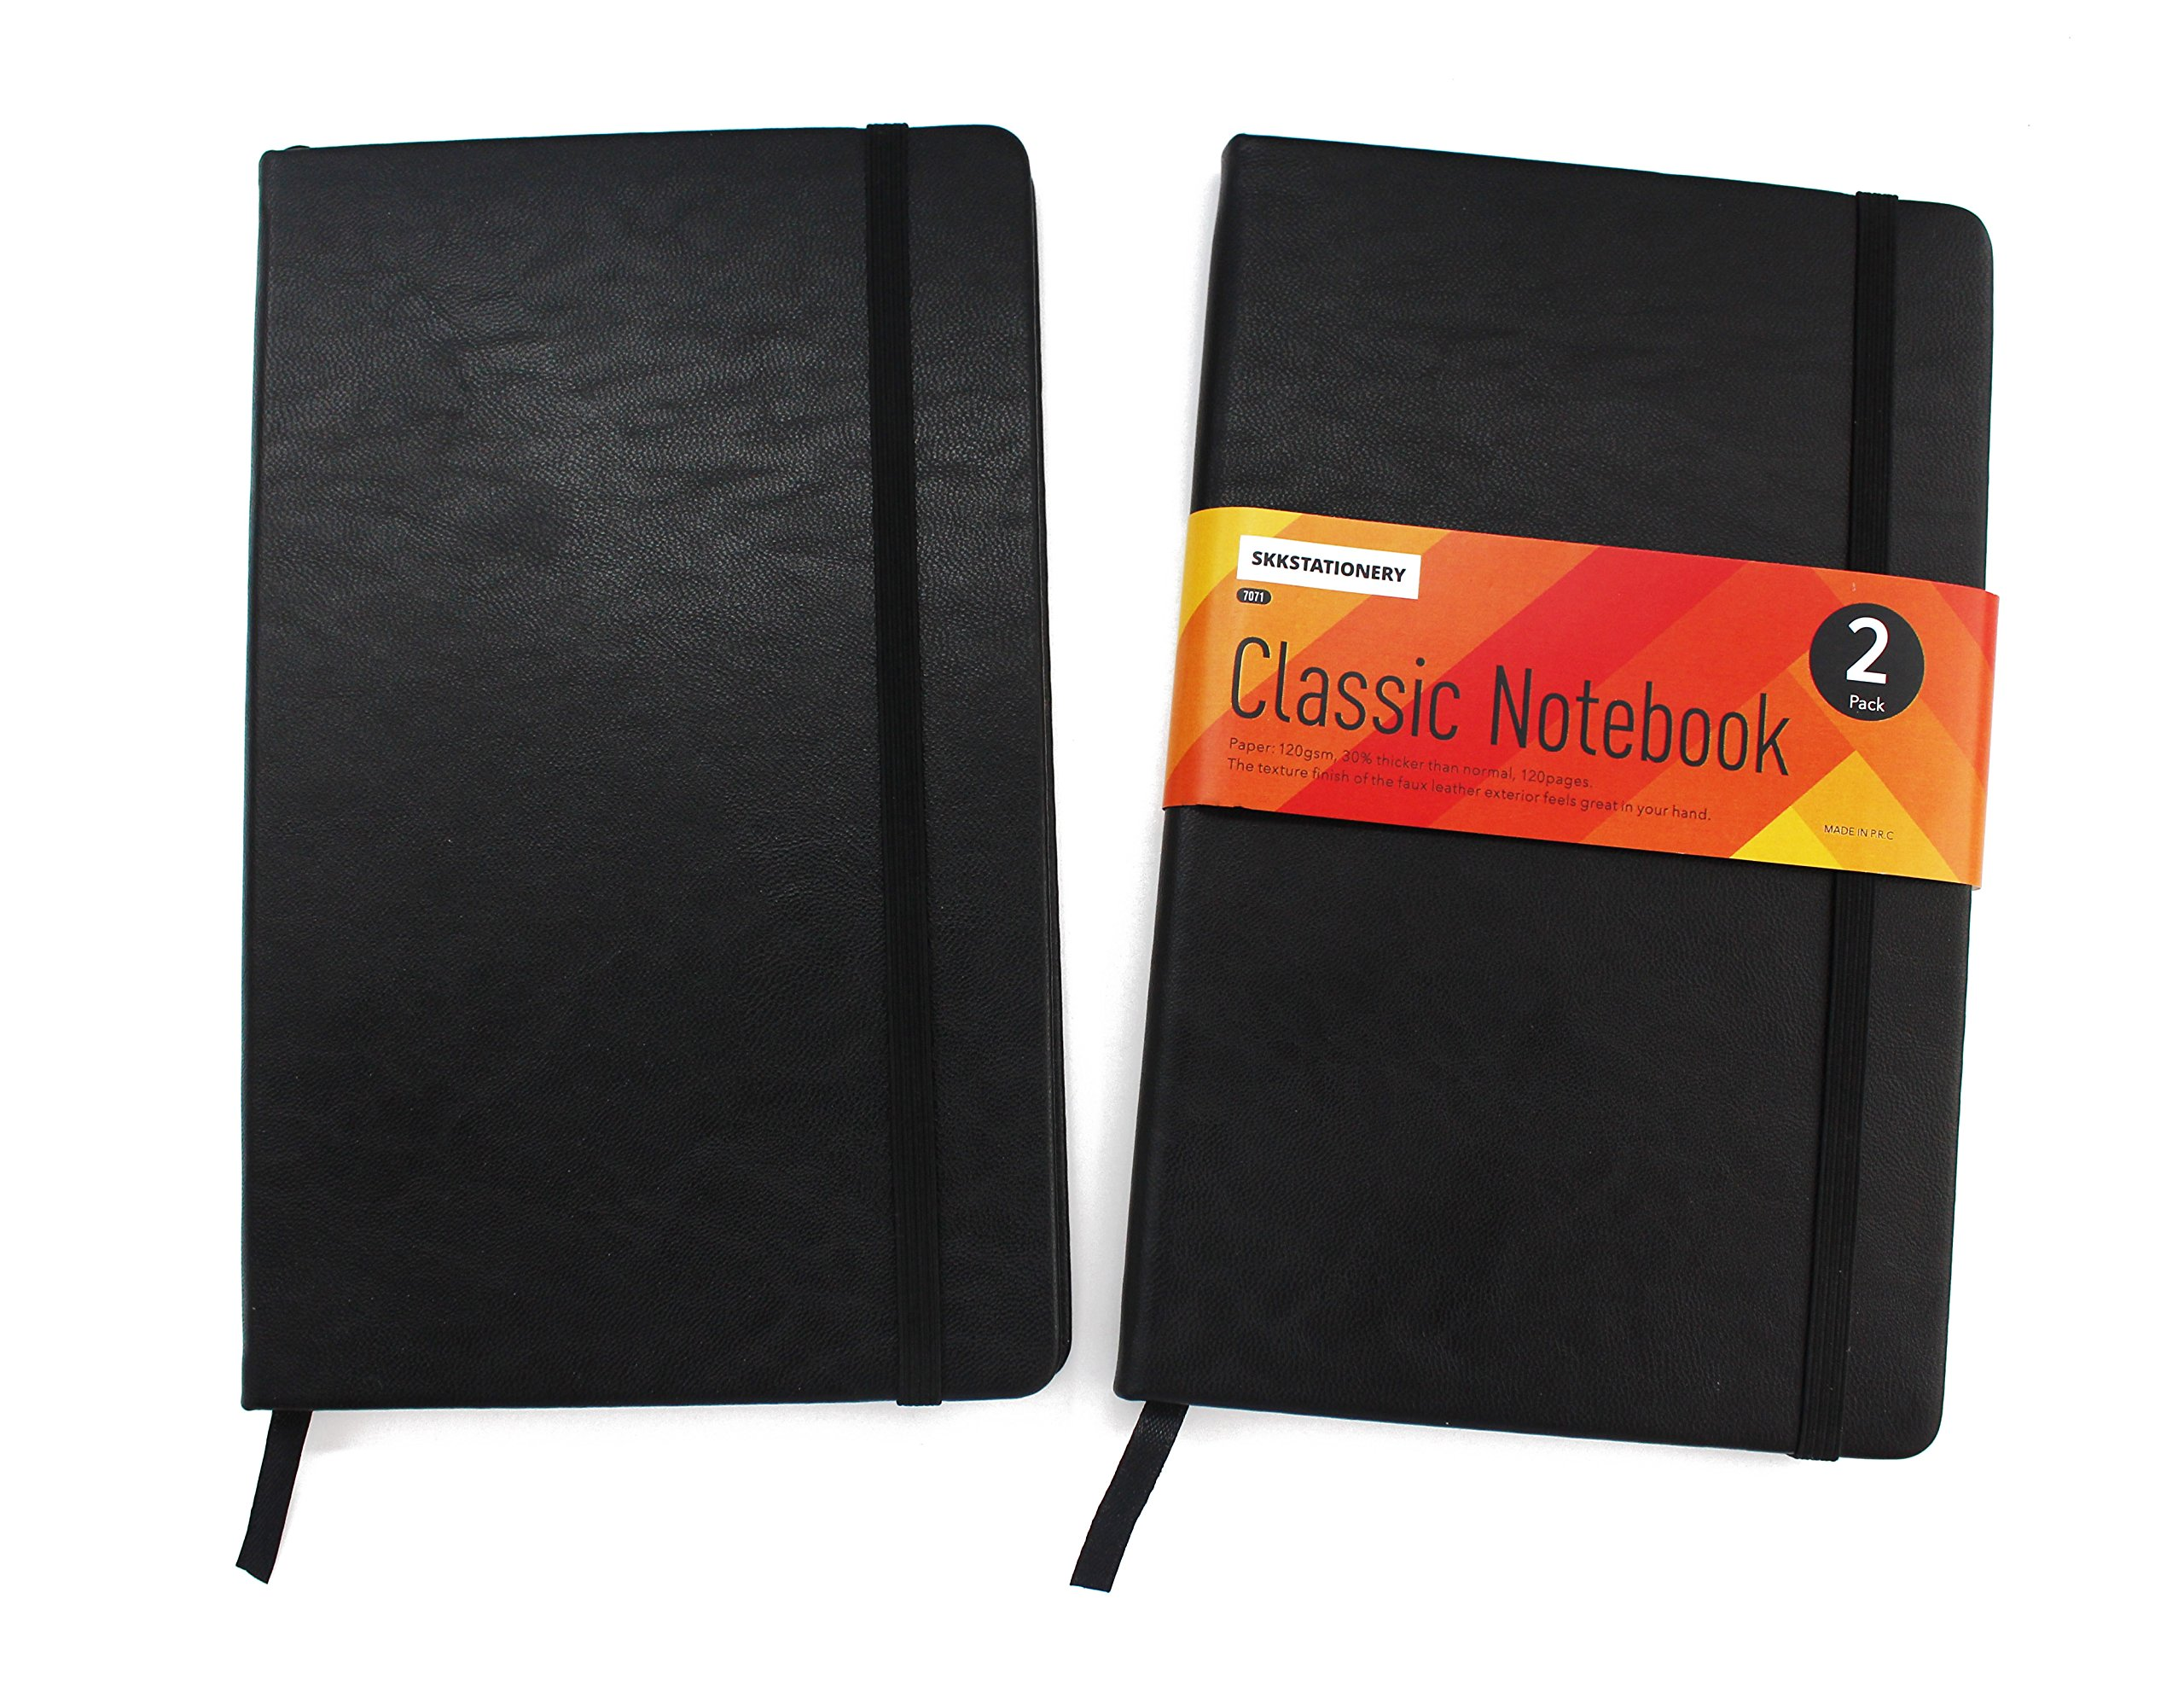 SKKSTATIONERY 2 Pack Classic Ruled Notebooks/Journals, 240 Pages, Premium Thick Paper Faux Leather Writing Notebook, Black, Hard Cover, Large, Lined